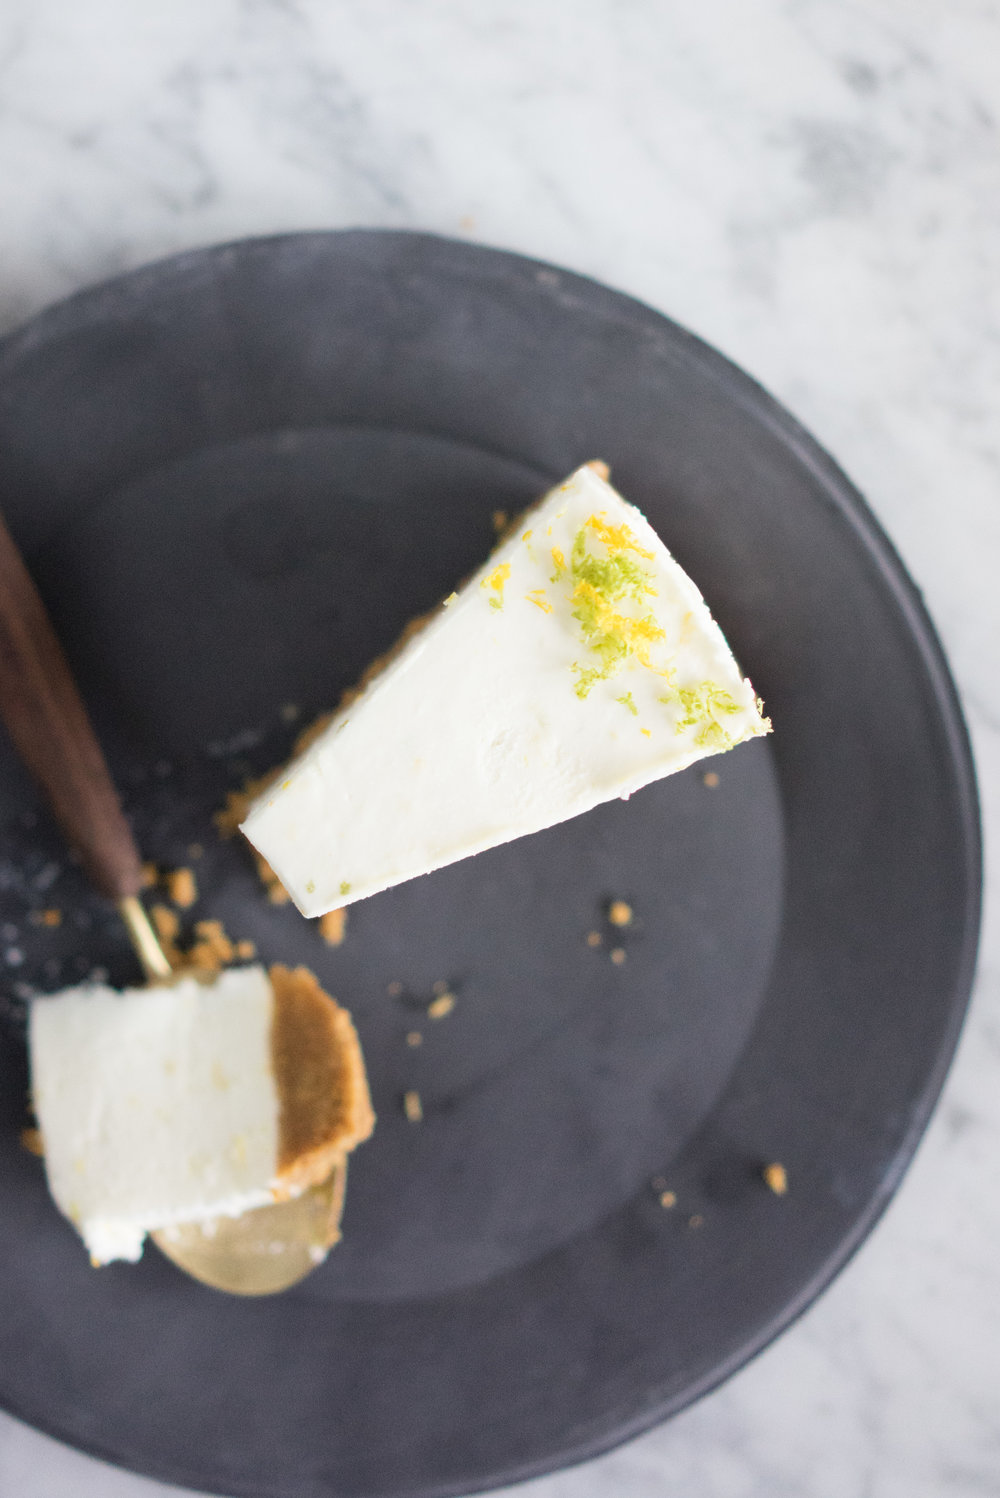 Lemon and Lime No bake cheesecake - the perfect make-ahead dessert that won't clog up precious oven space when preparing for a busy dinner party!